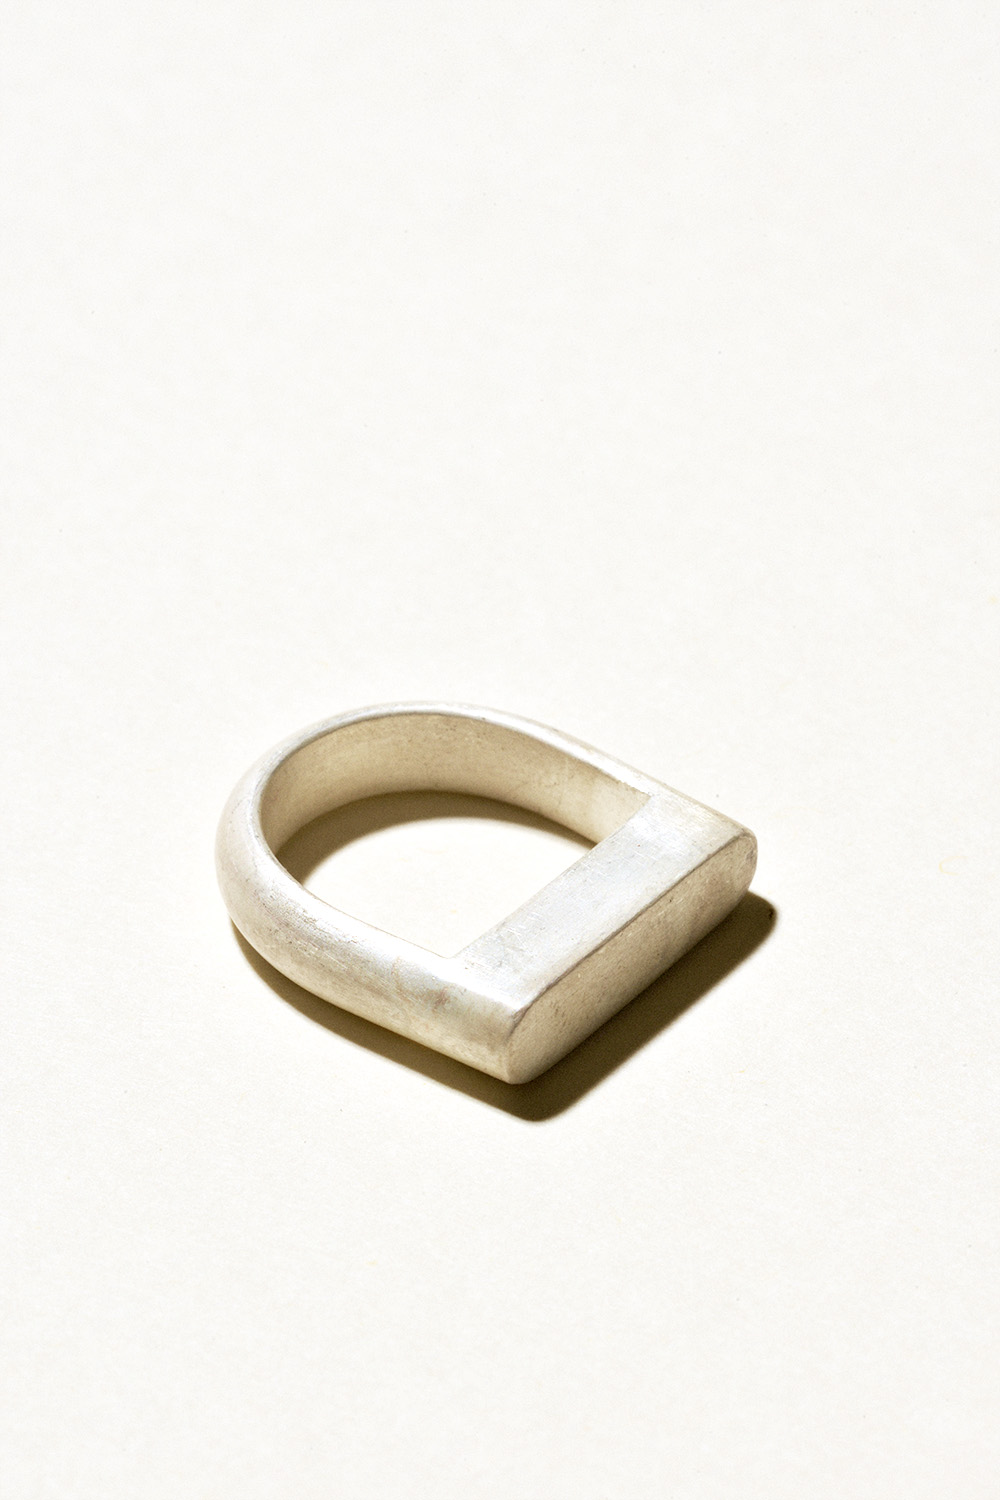 U Ring - 5mm wideSterling Silver, Raw FinishHand Smithed $125